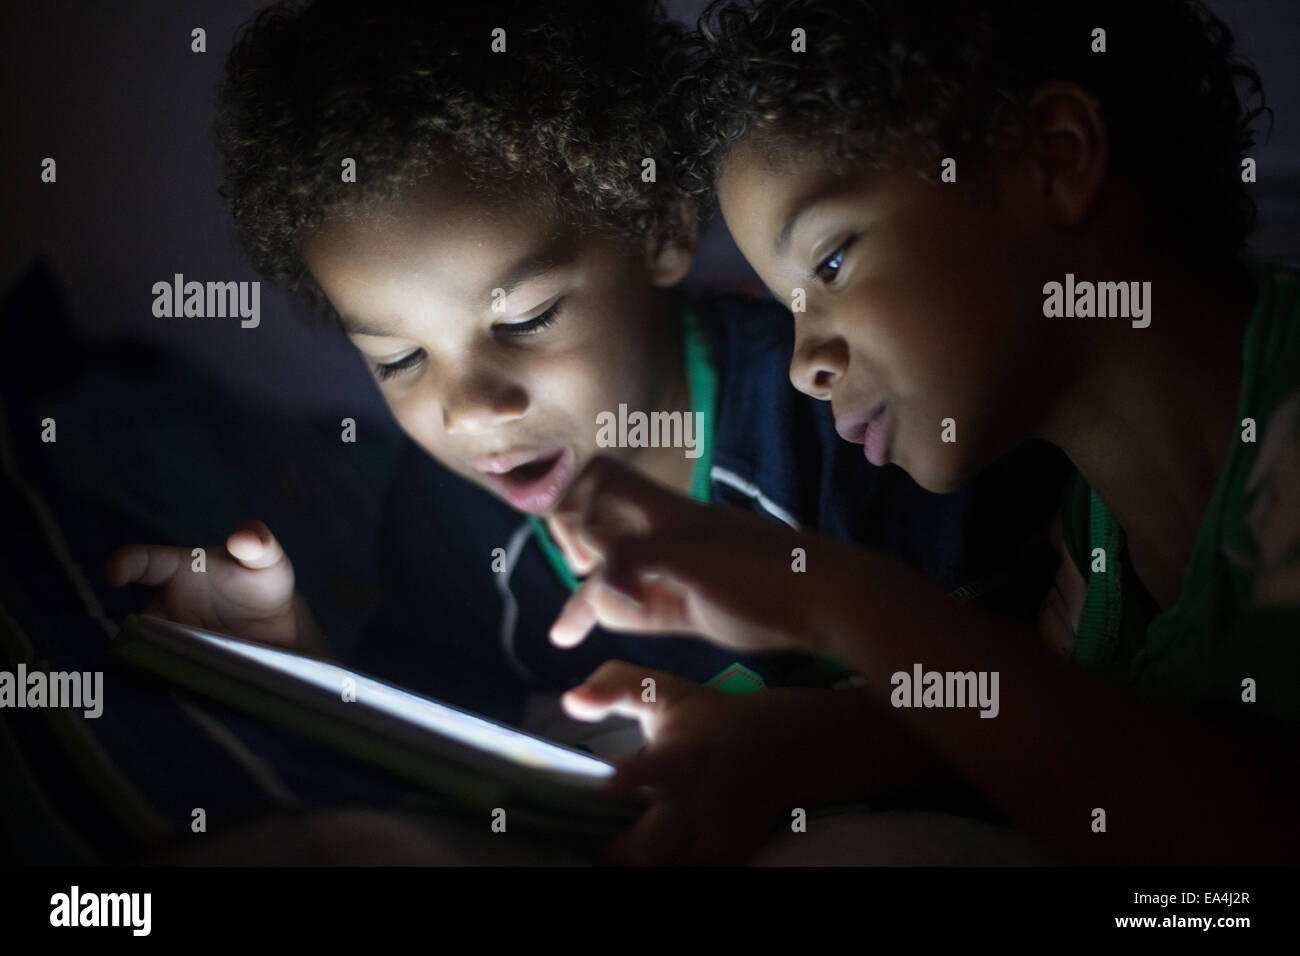 mixed race brothers playing games and learning on an ipad type device with light lighting up their faces in the - Stock Image